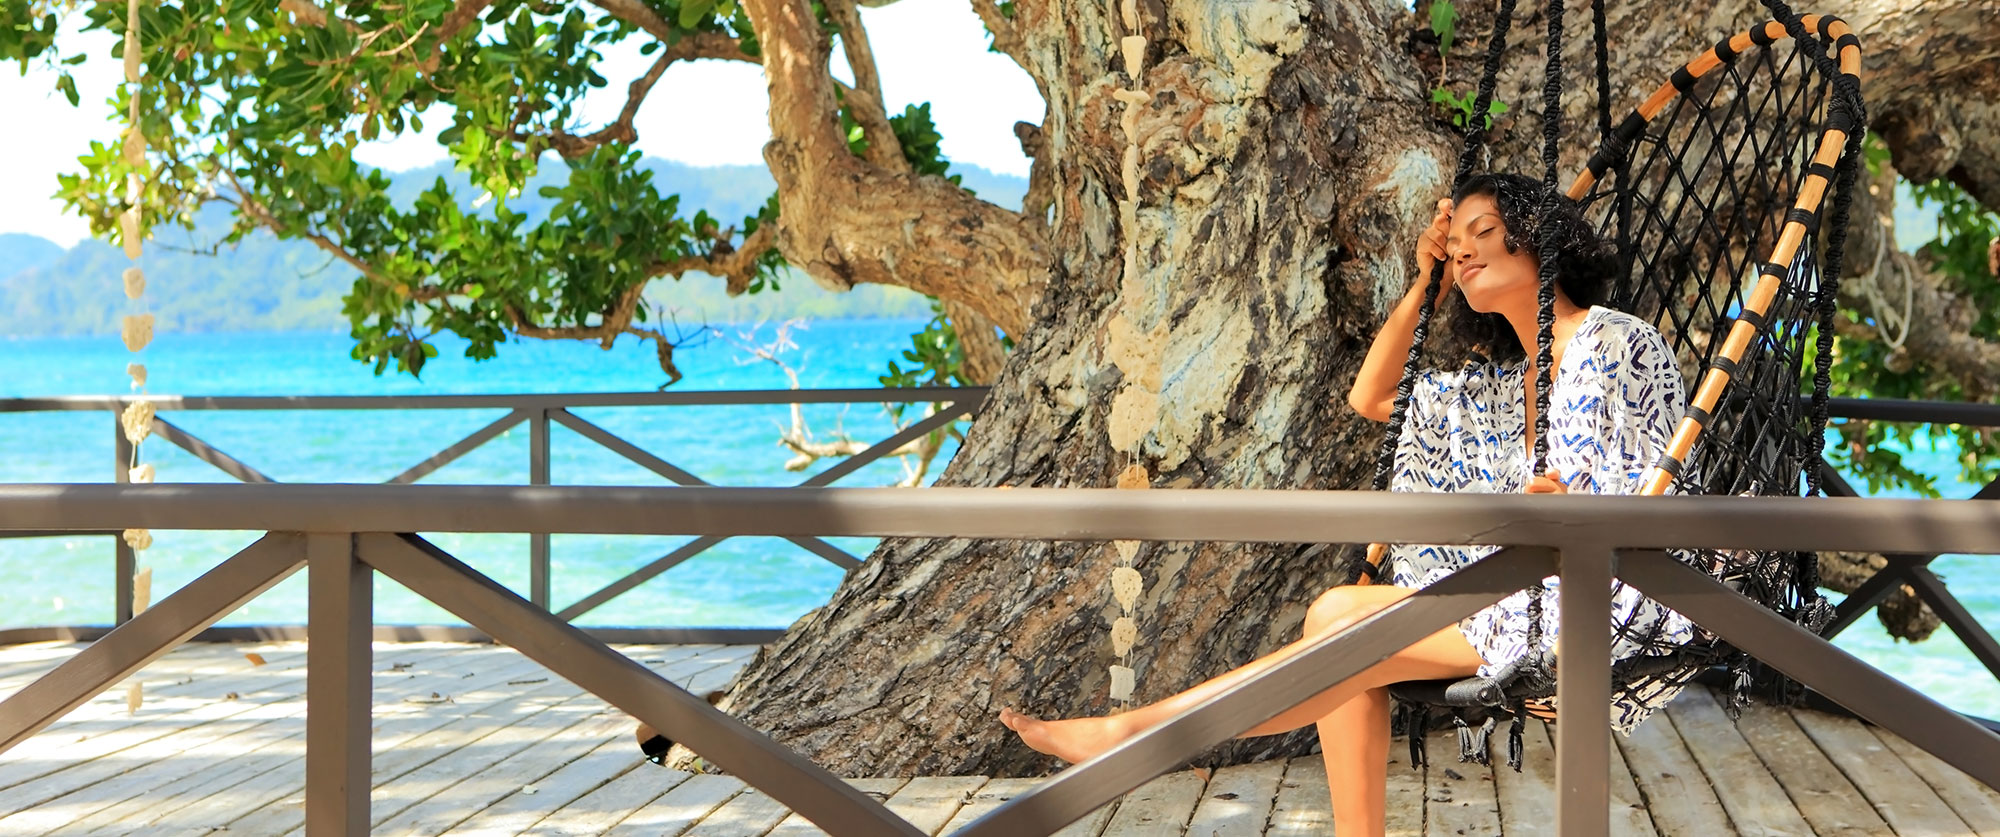 Matangi Private Island Resort - Luxury Fiji Vacation